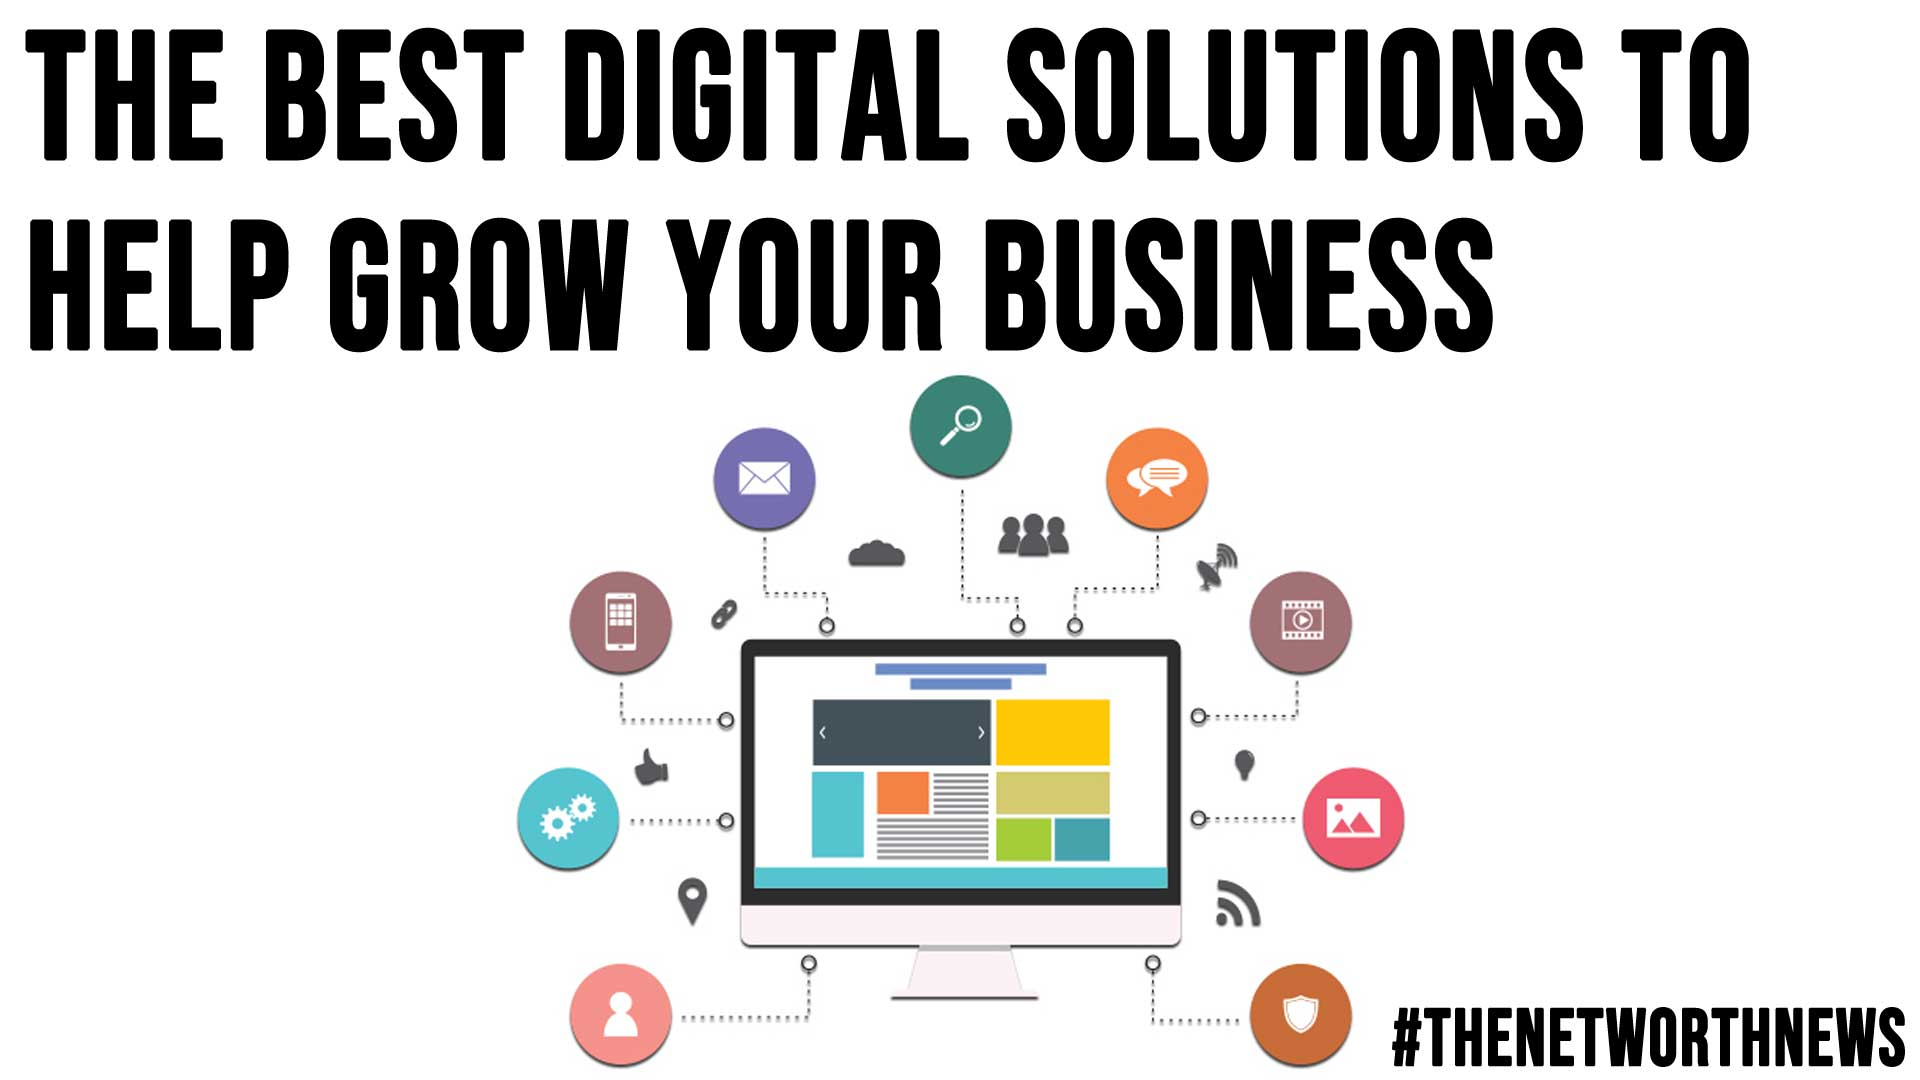 The Best Digital Solutions to Help Grow Your Business